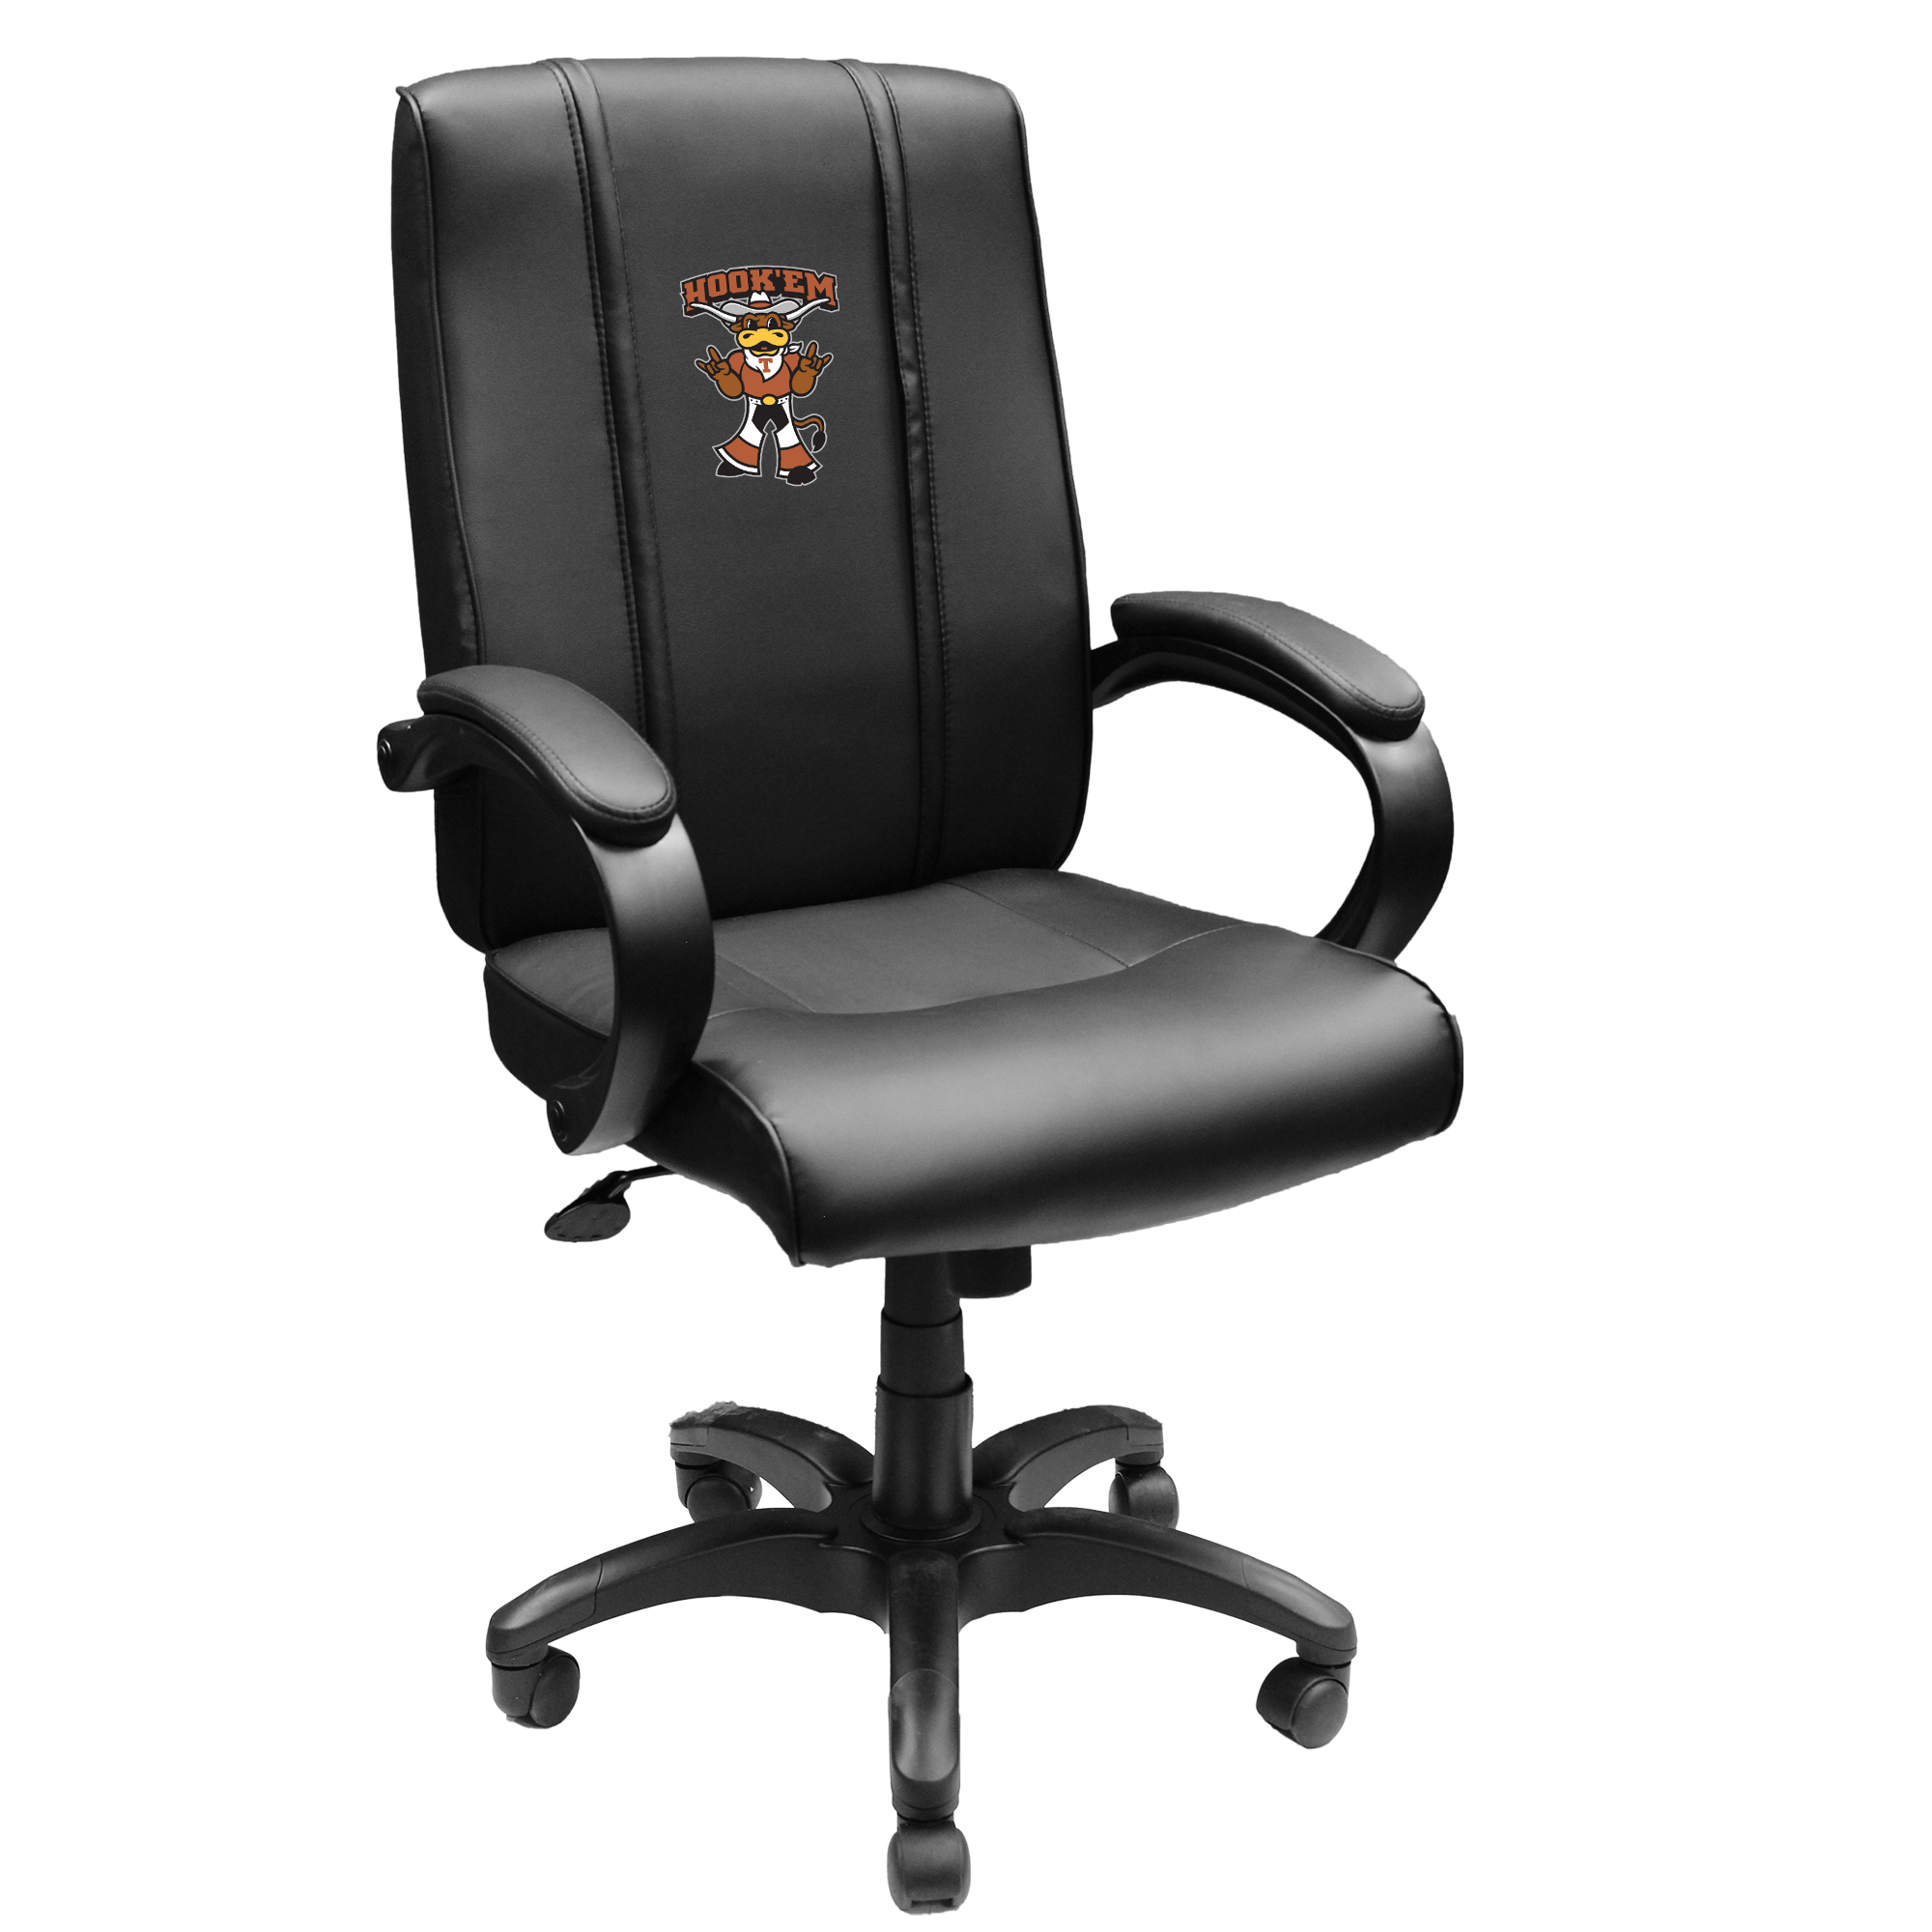 Office Chair 1000 with Texas Longhorns Alternate